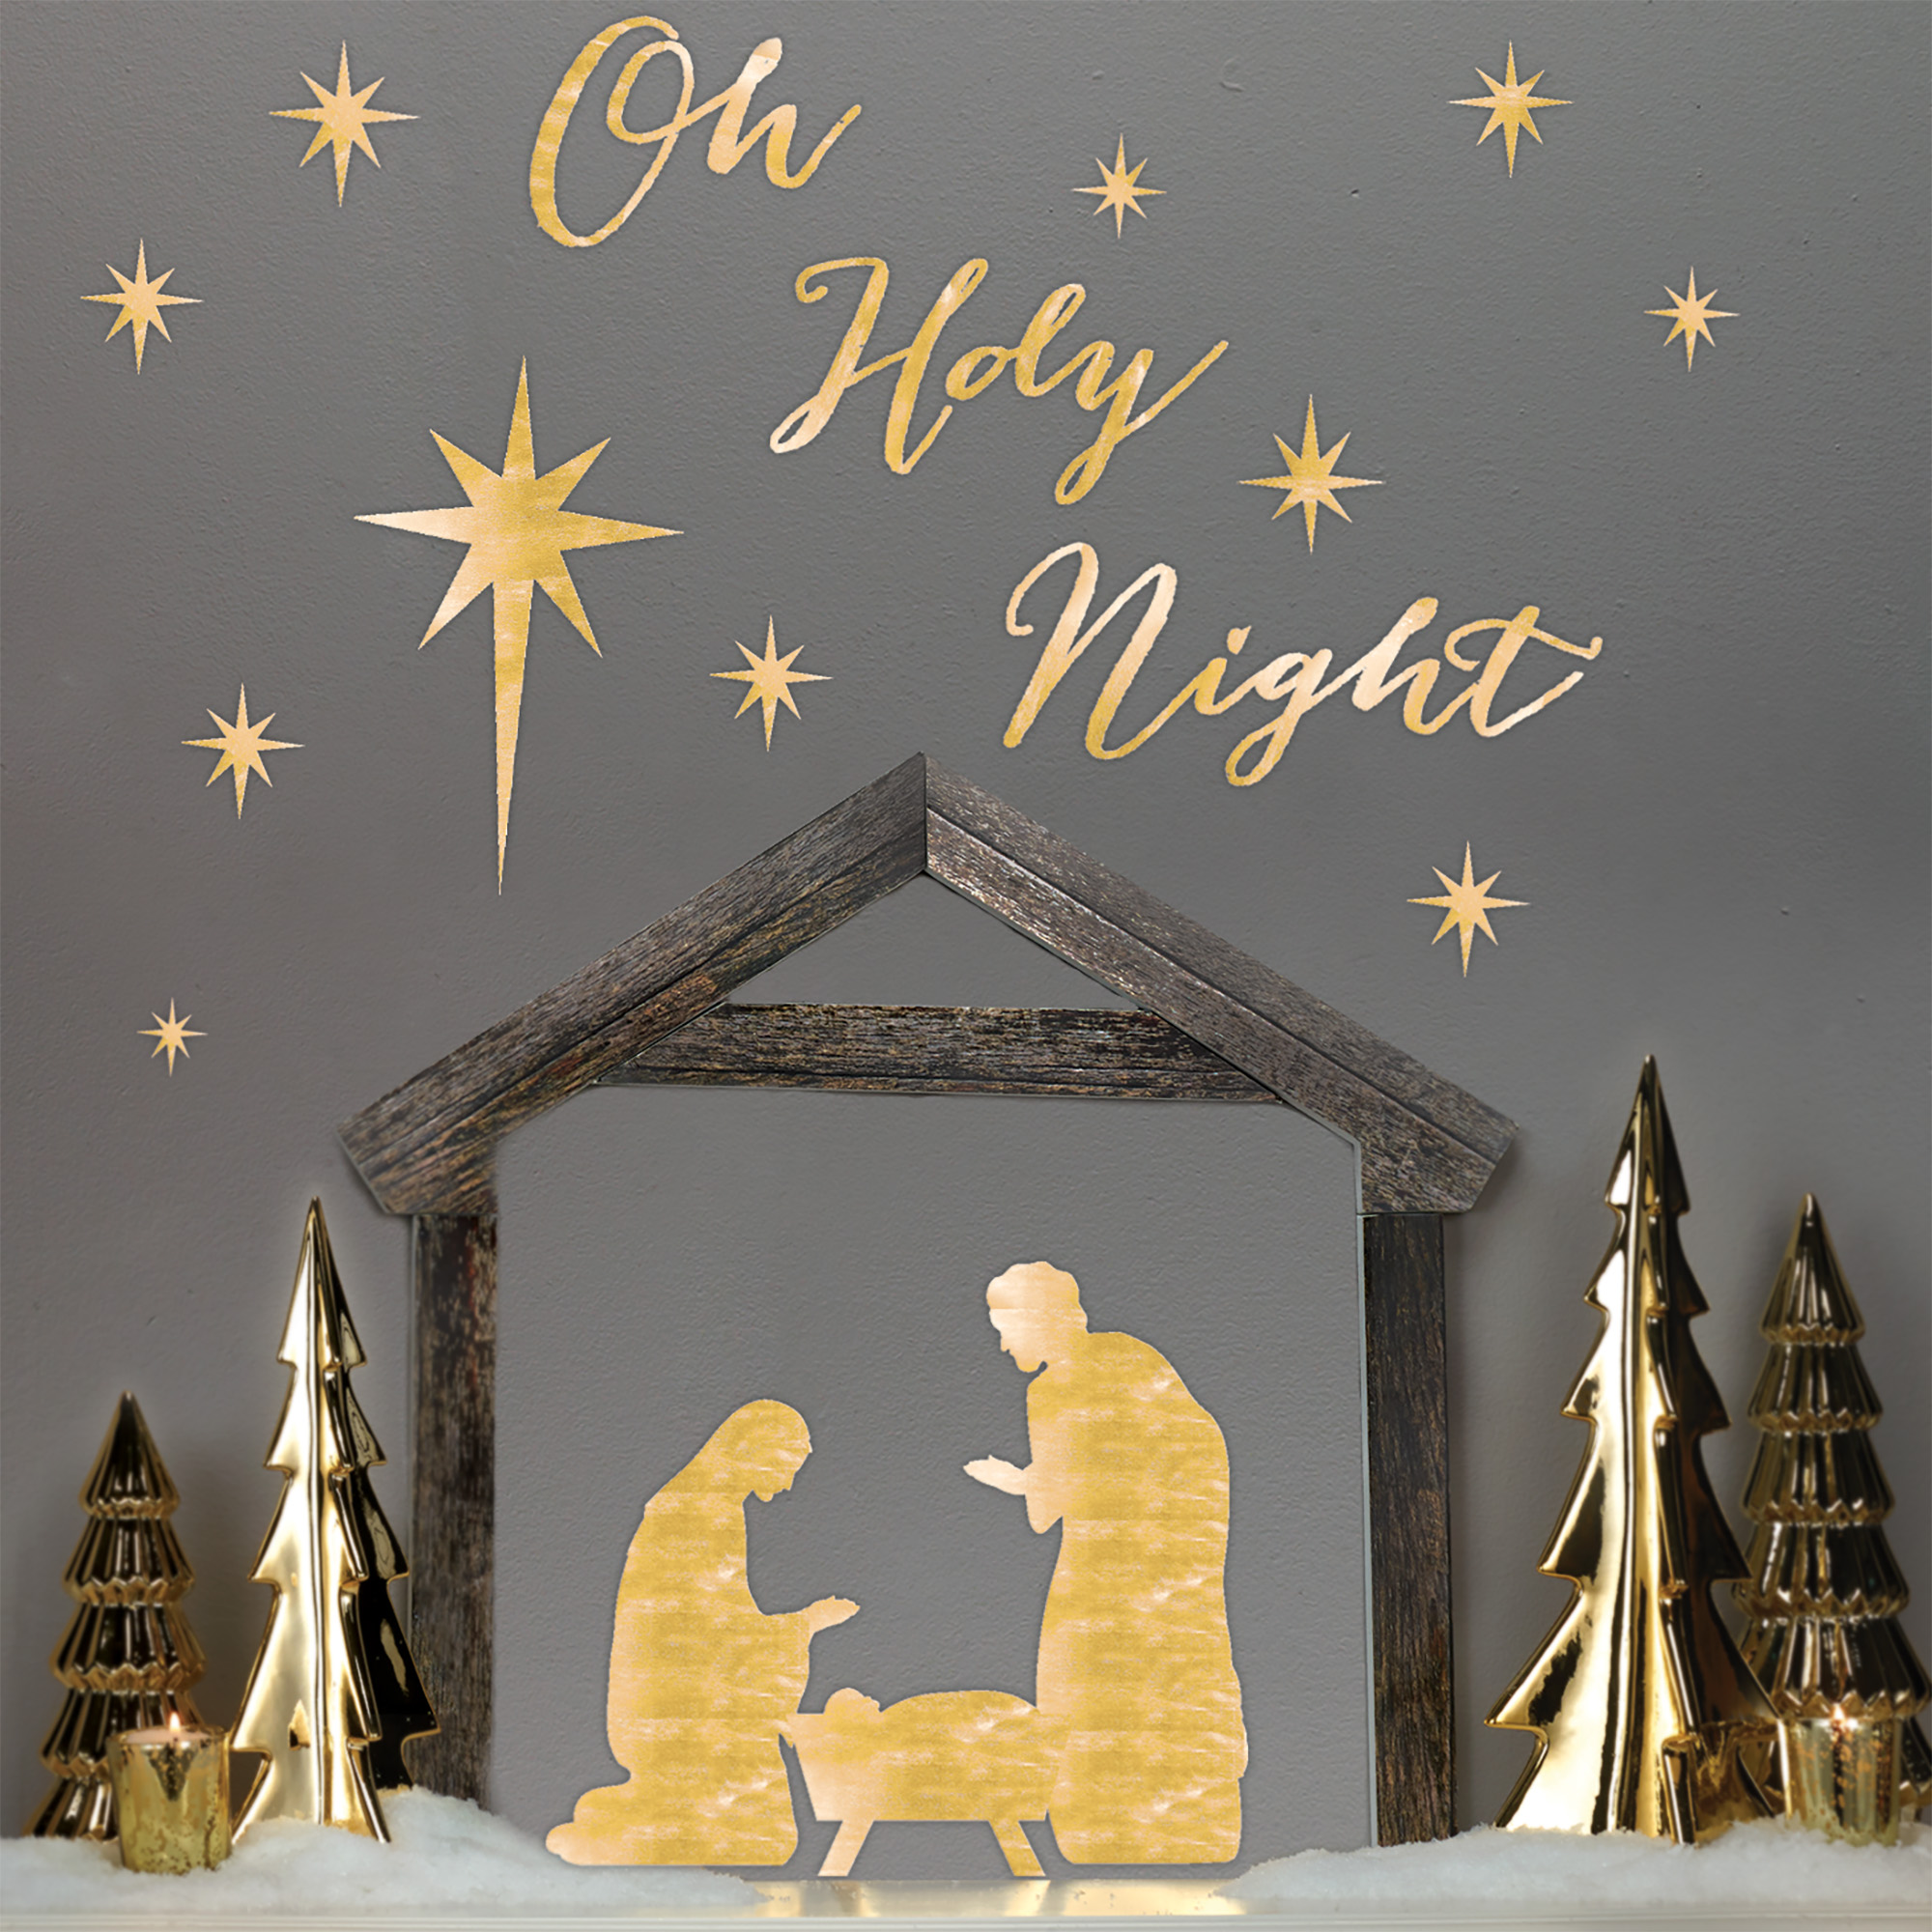 HOLIDAY TIME NATIVITY DIMENSIONAL WALL ART, 27.5 X 13 INCH